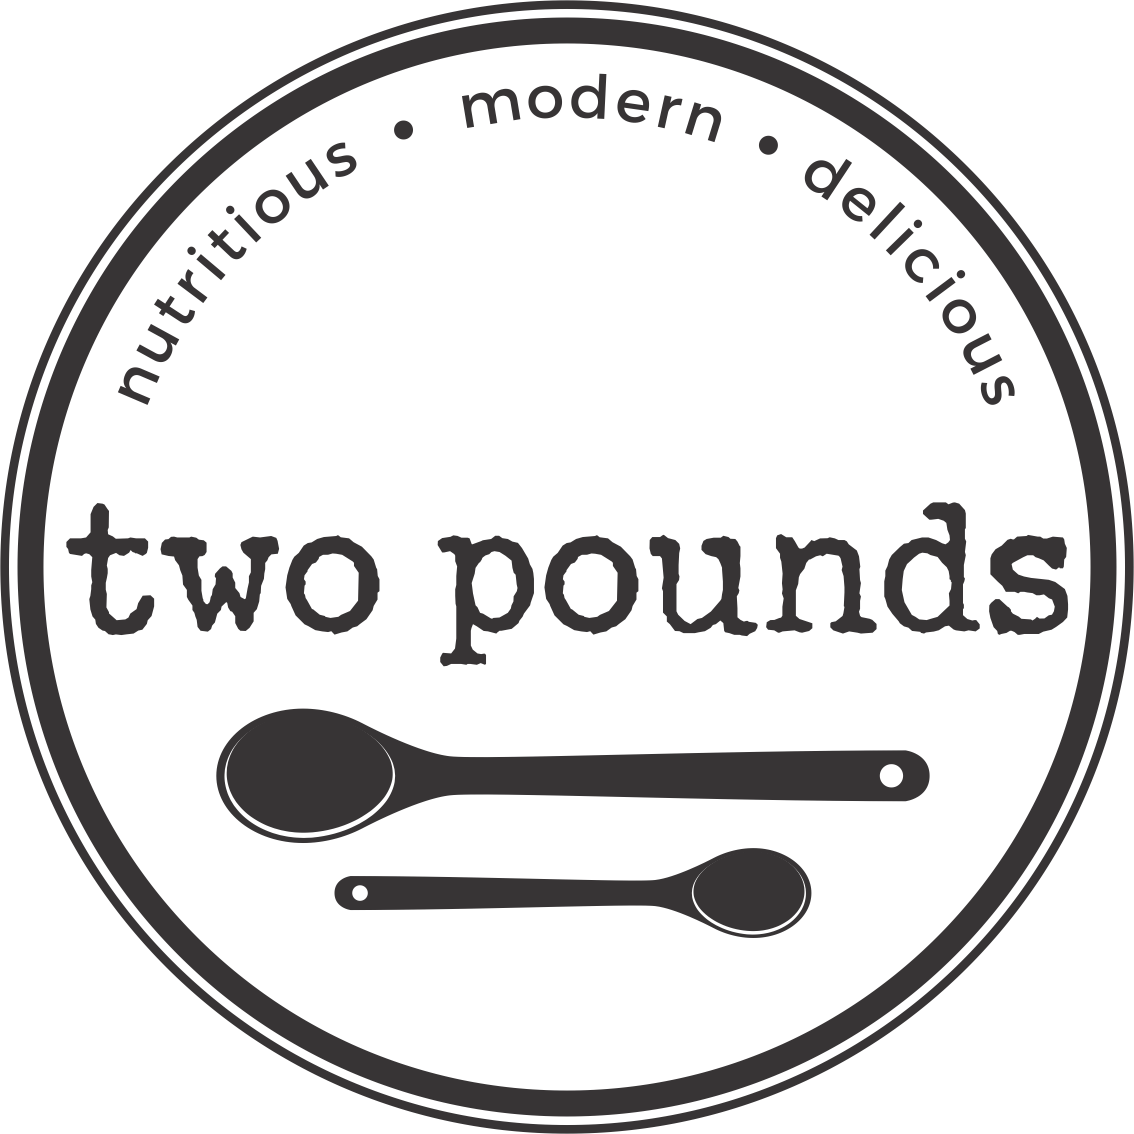 two pounds